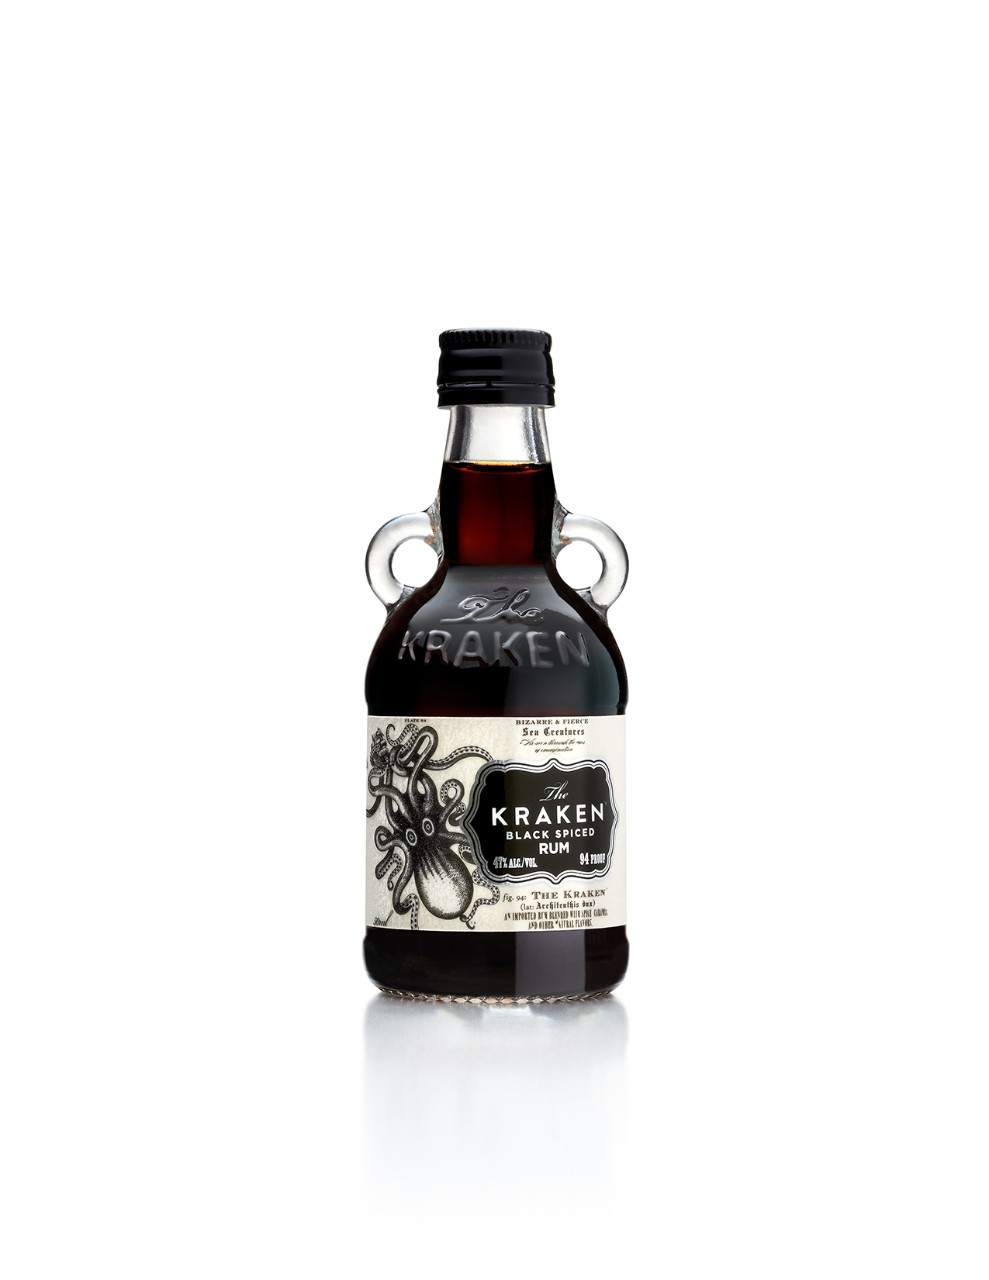 The Kraken Black Spiced Rum from LCBO